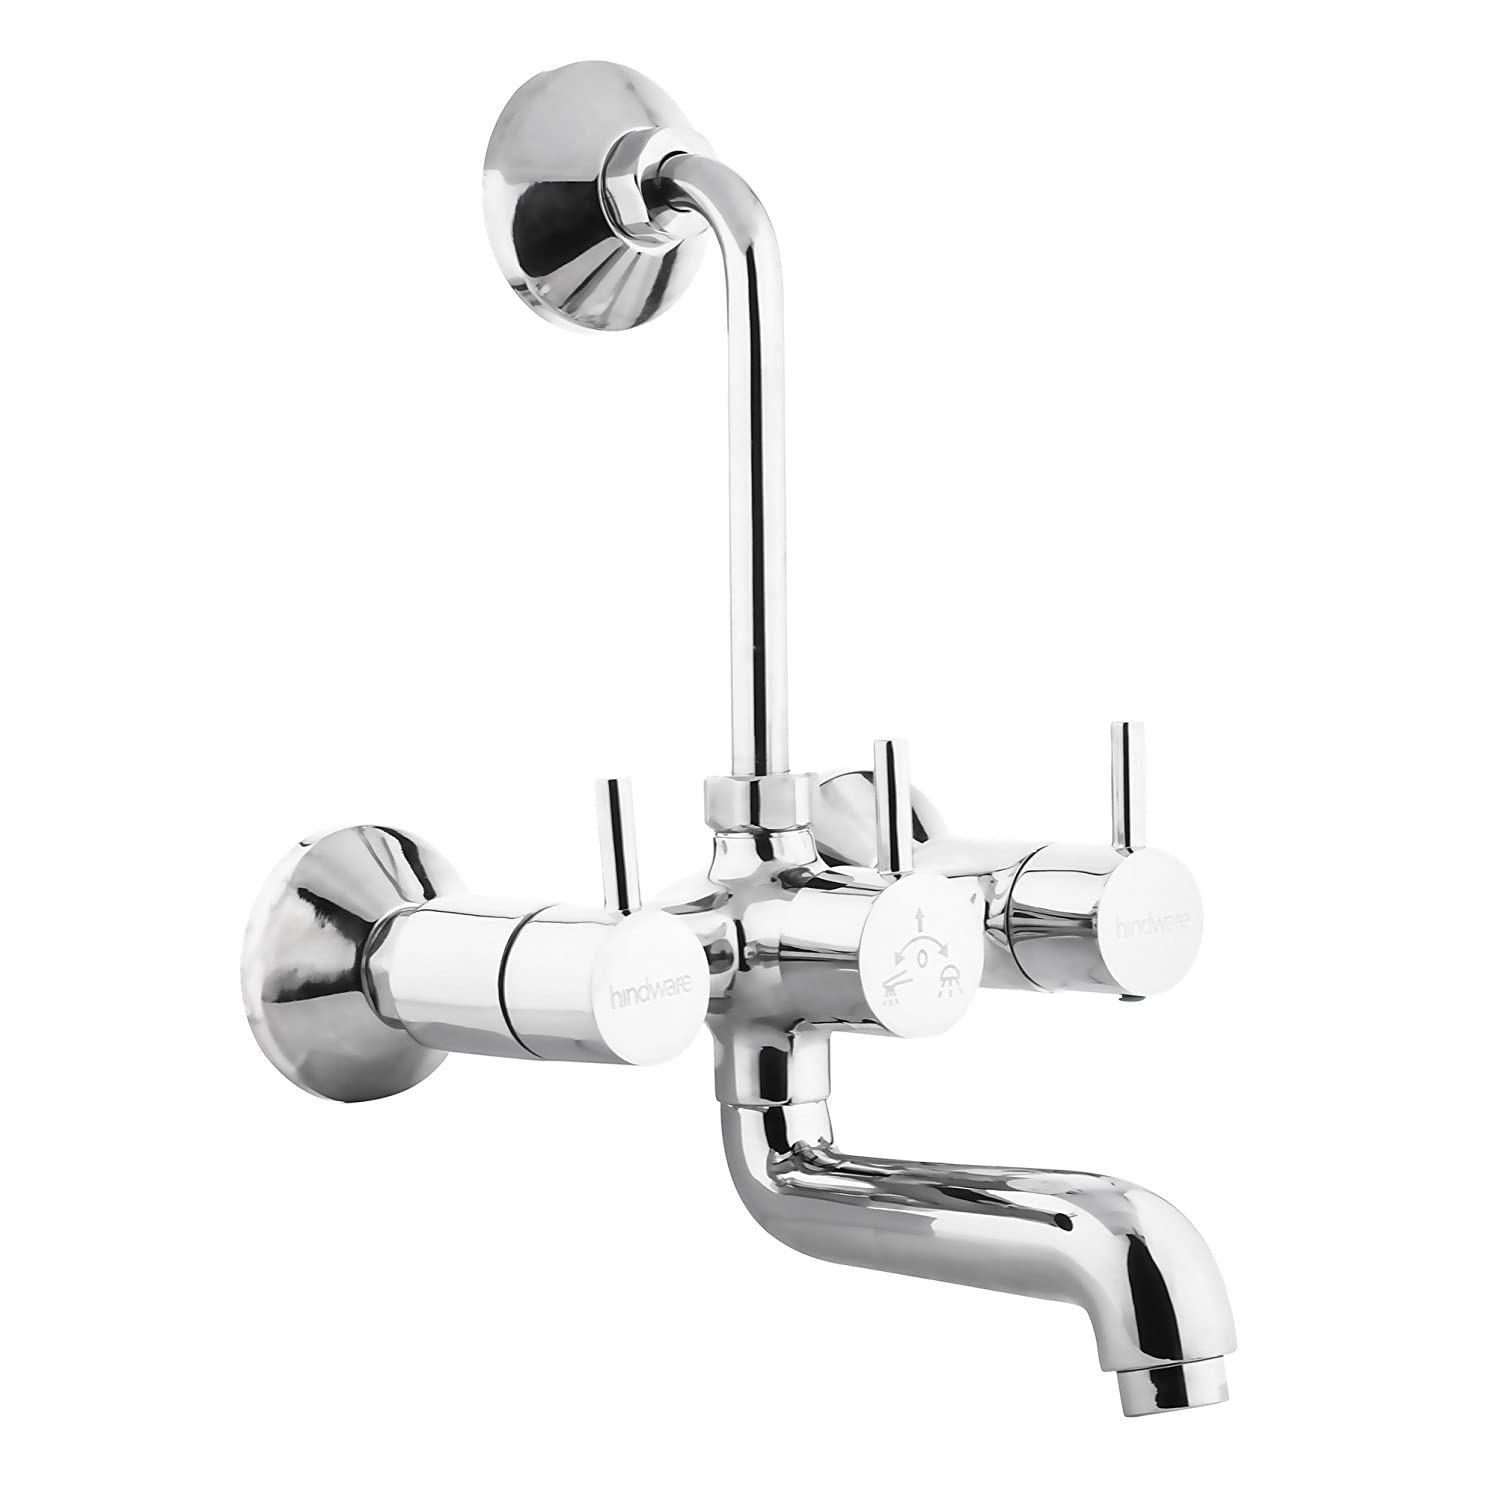 Hindware F280018cp Wall Mixer With Provision For Overhead Shower Stroller Creative Classik 115mm Long Bend Pipe Flora Chrome Finish Home Improvement